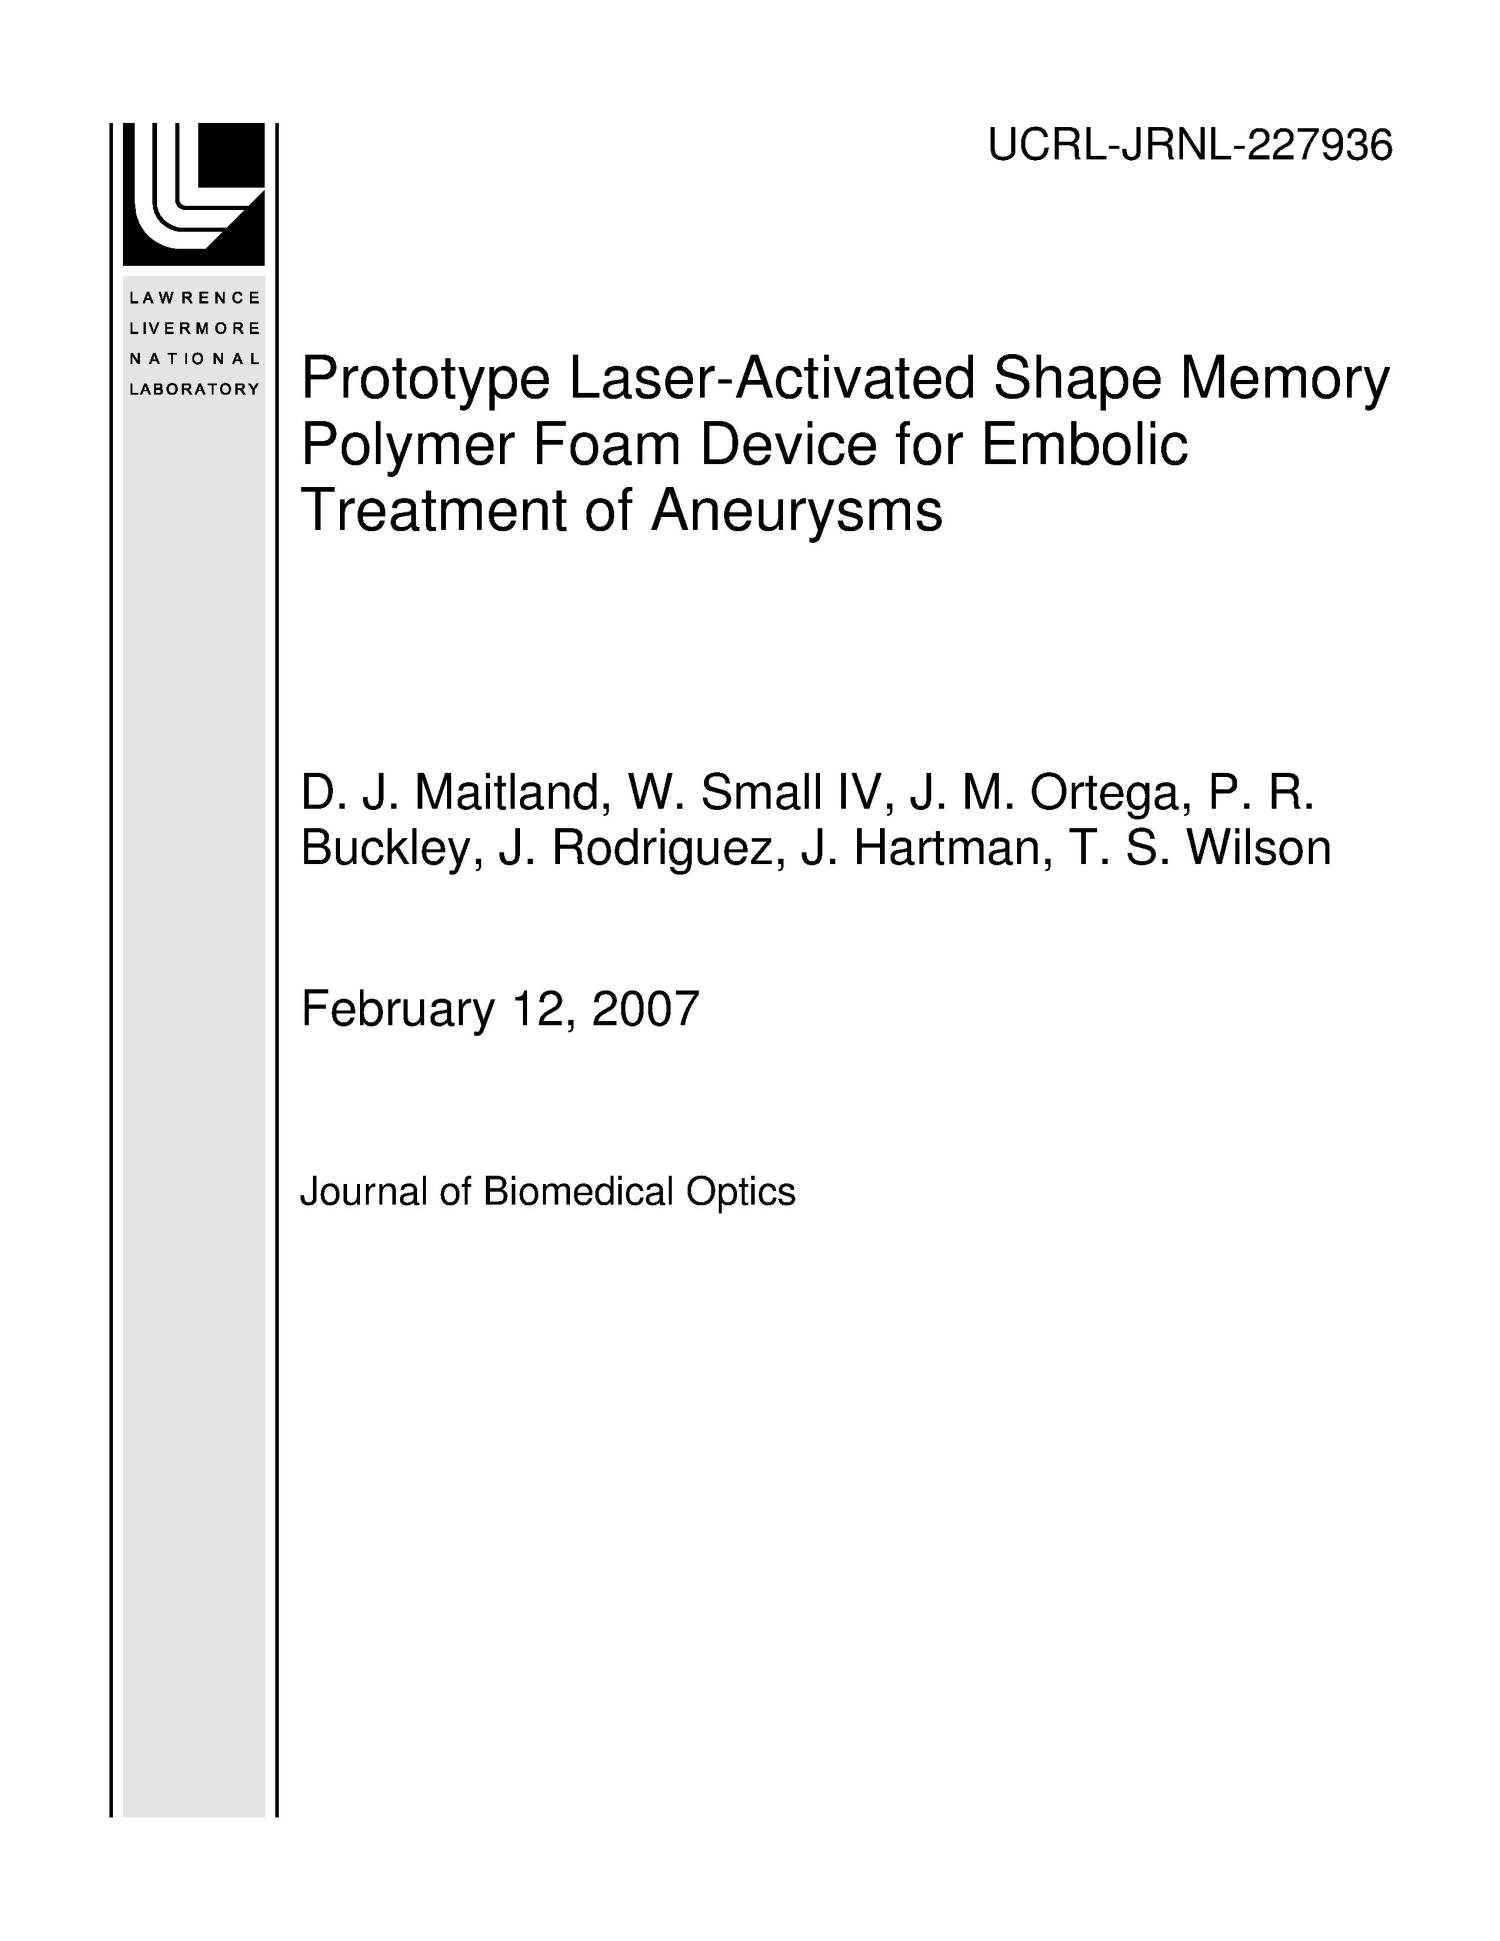 Prototype Laser-Activated Shape Memory Polymer Foam Device for Embolic Treatment of Aneurysms                                                                                                      [Sequence #]: 1 of 15